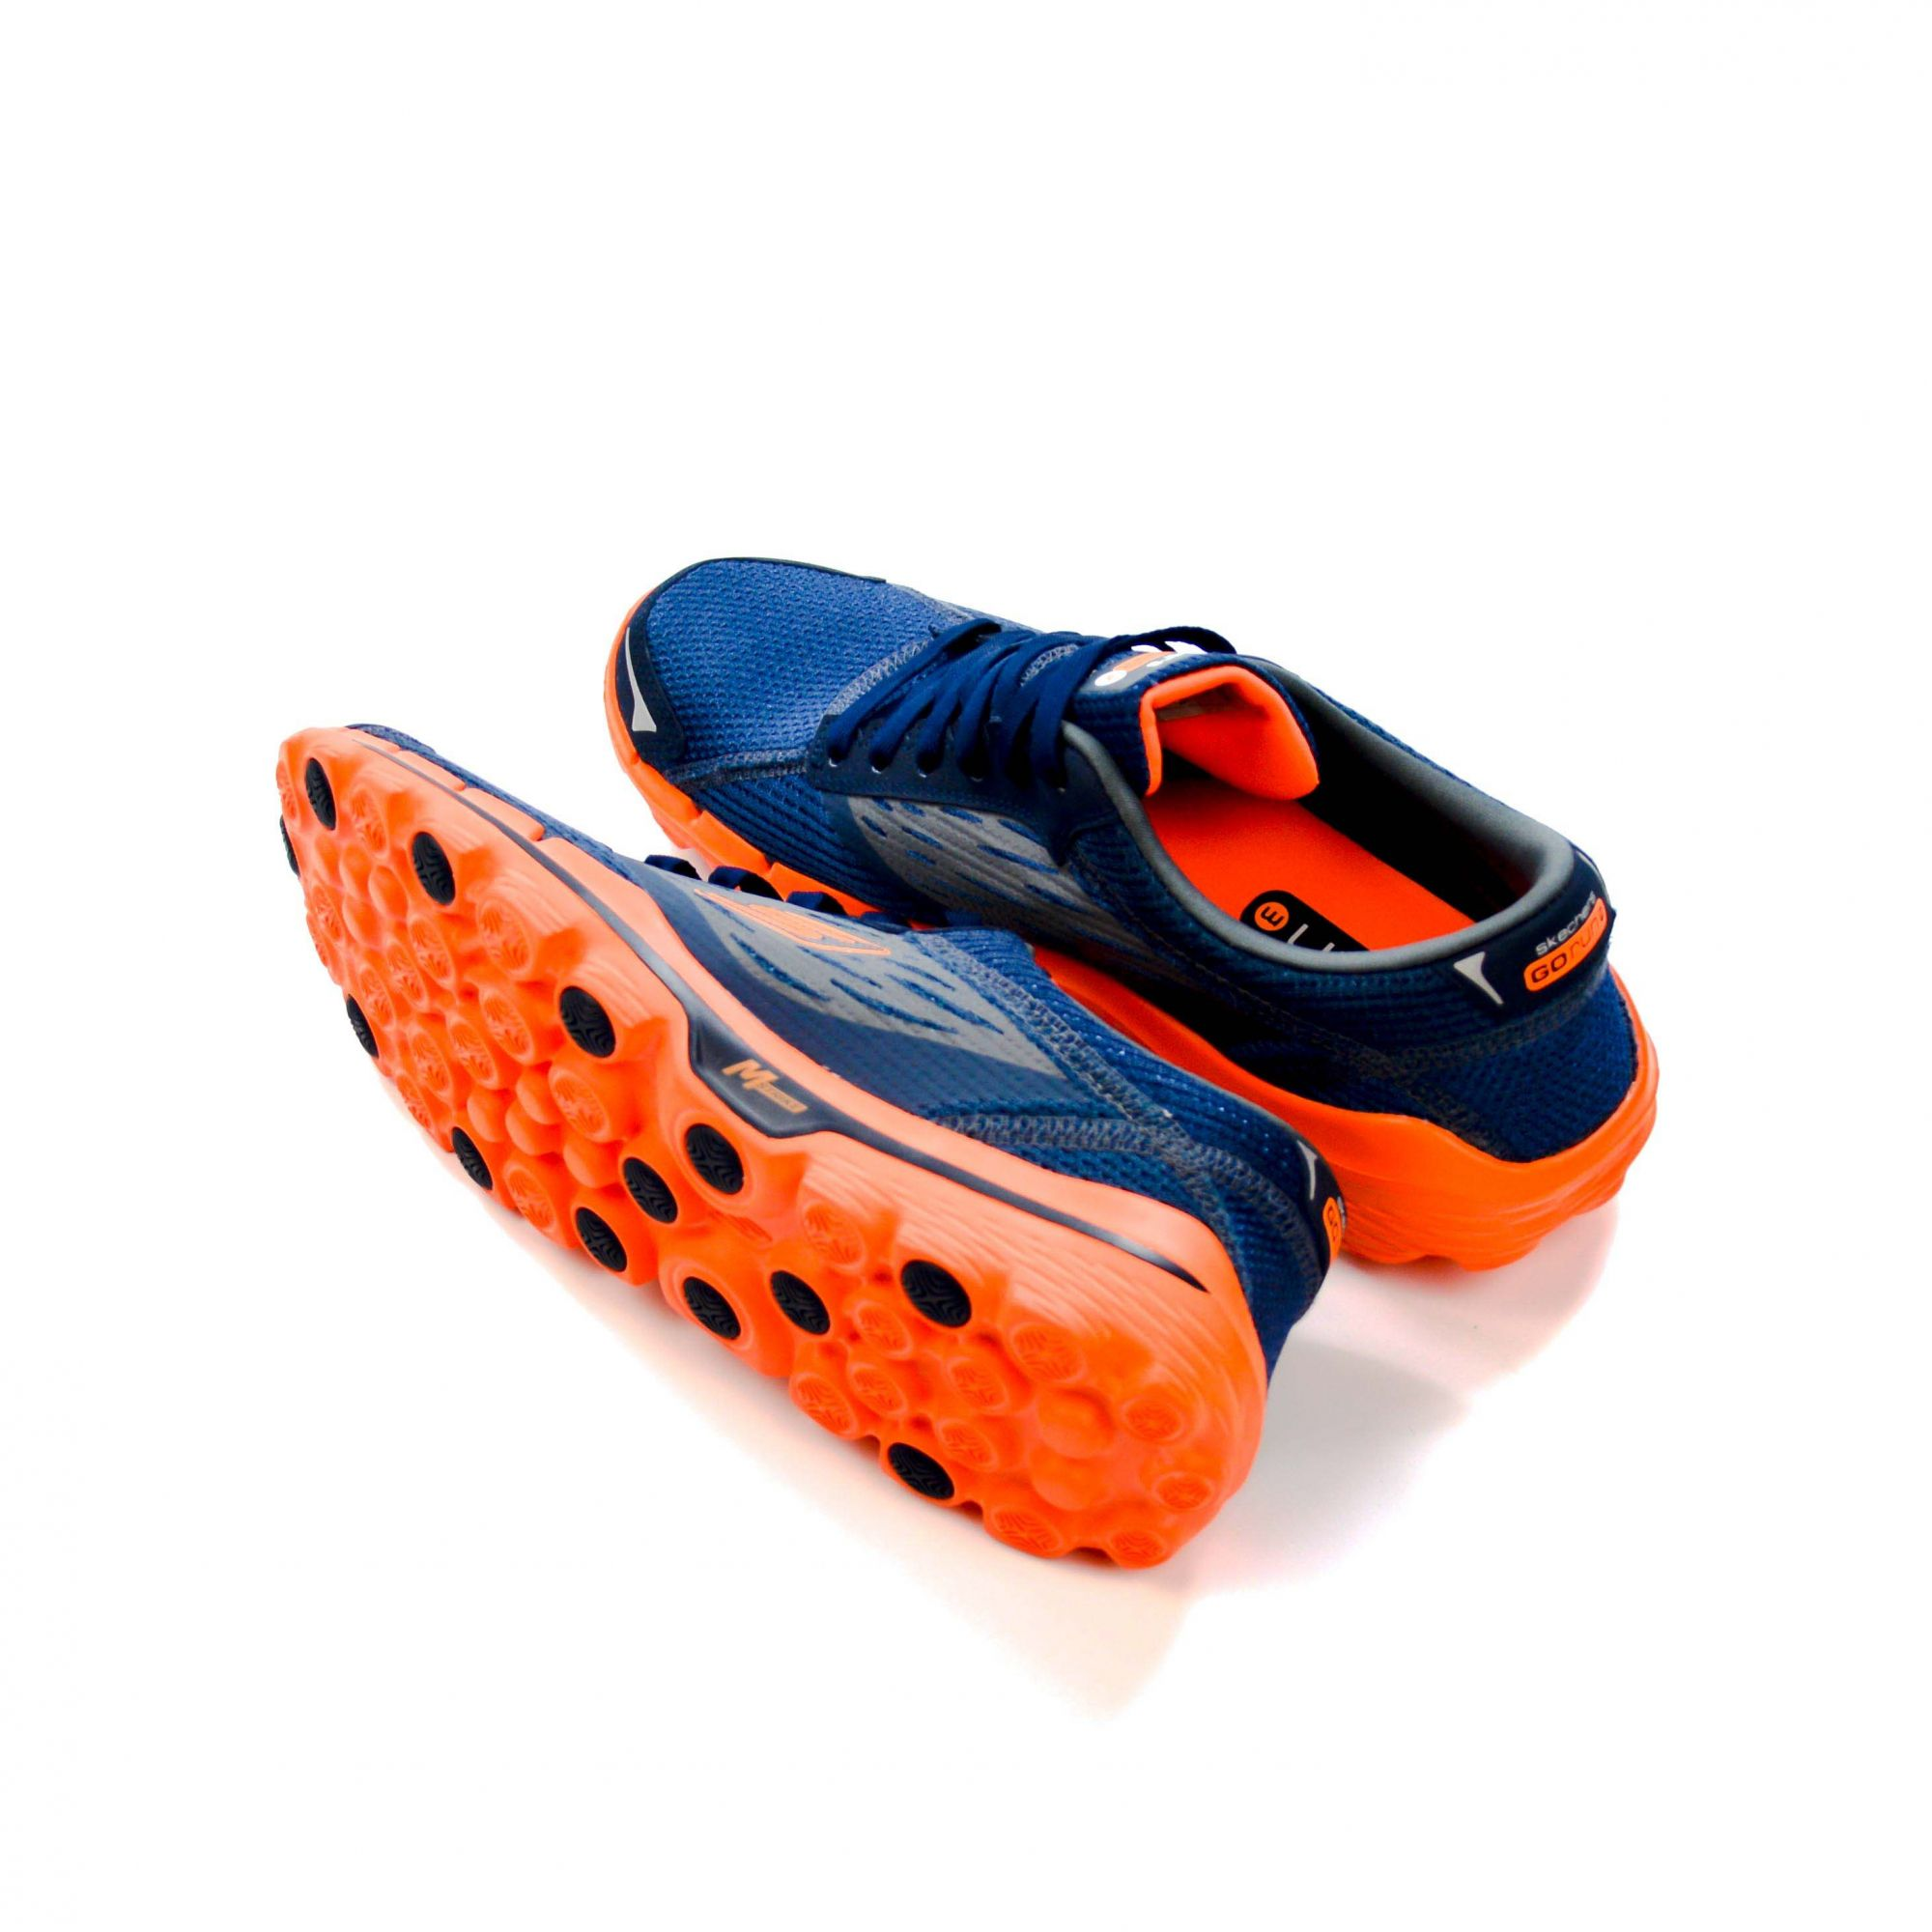 TÊNIS ESPORTIVO 39 MASCULINO SKECHERS GO RUN 2 MARINHO/ORANGE - 06517